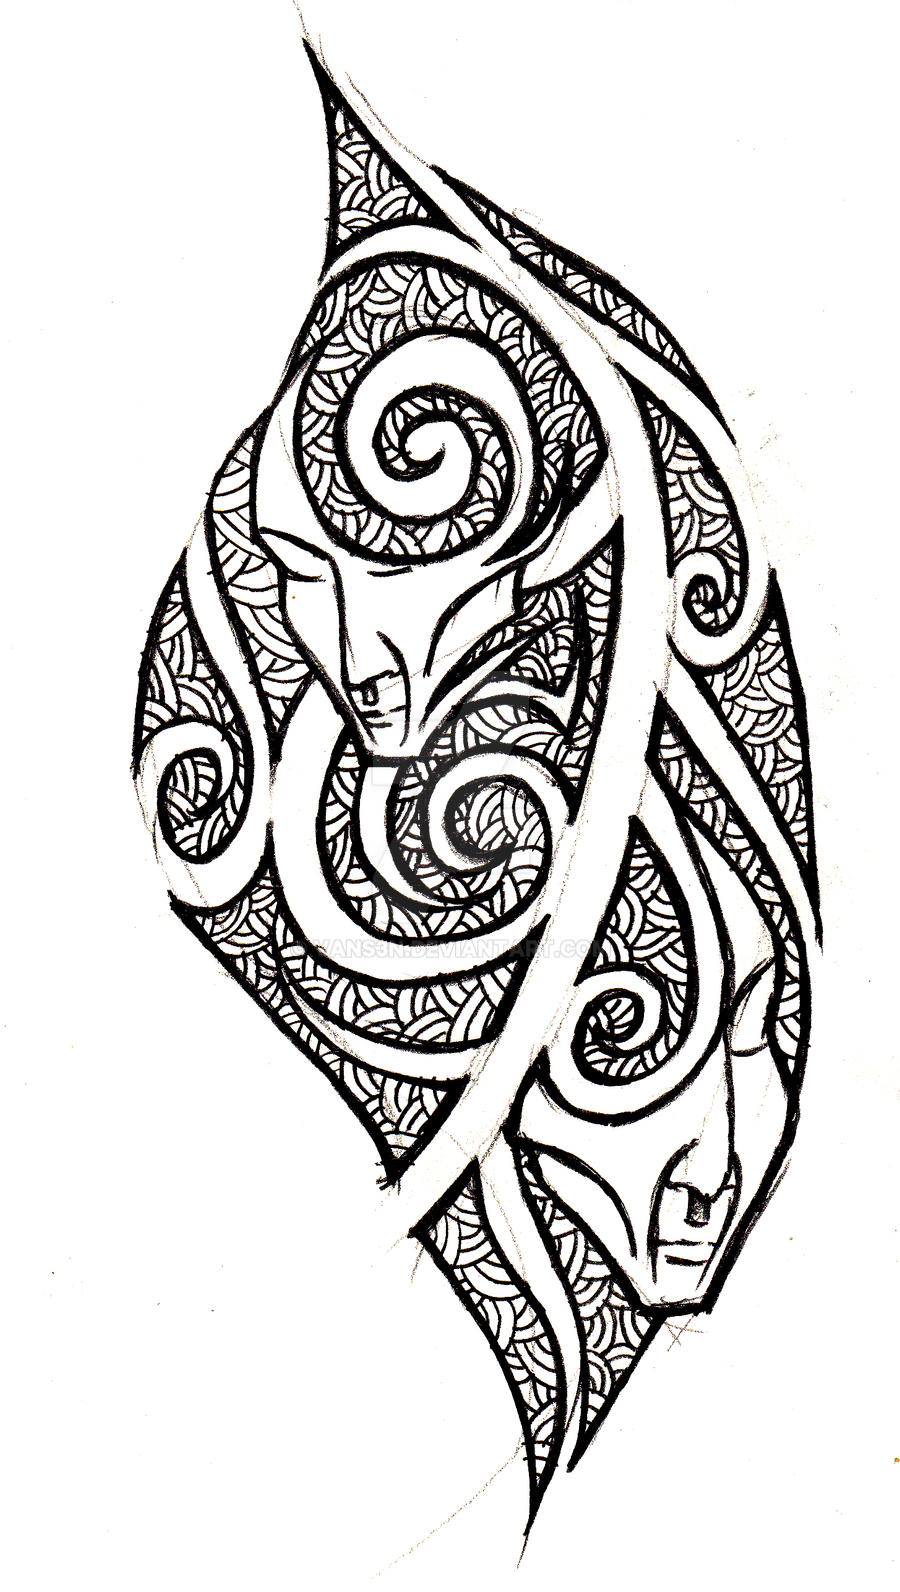 Gemini tribal tattoo concept by vans3n on deviantart for Gemini tribal tattoo